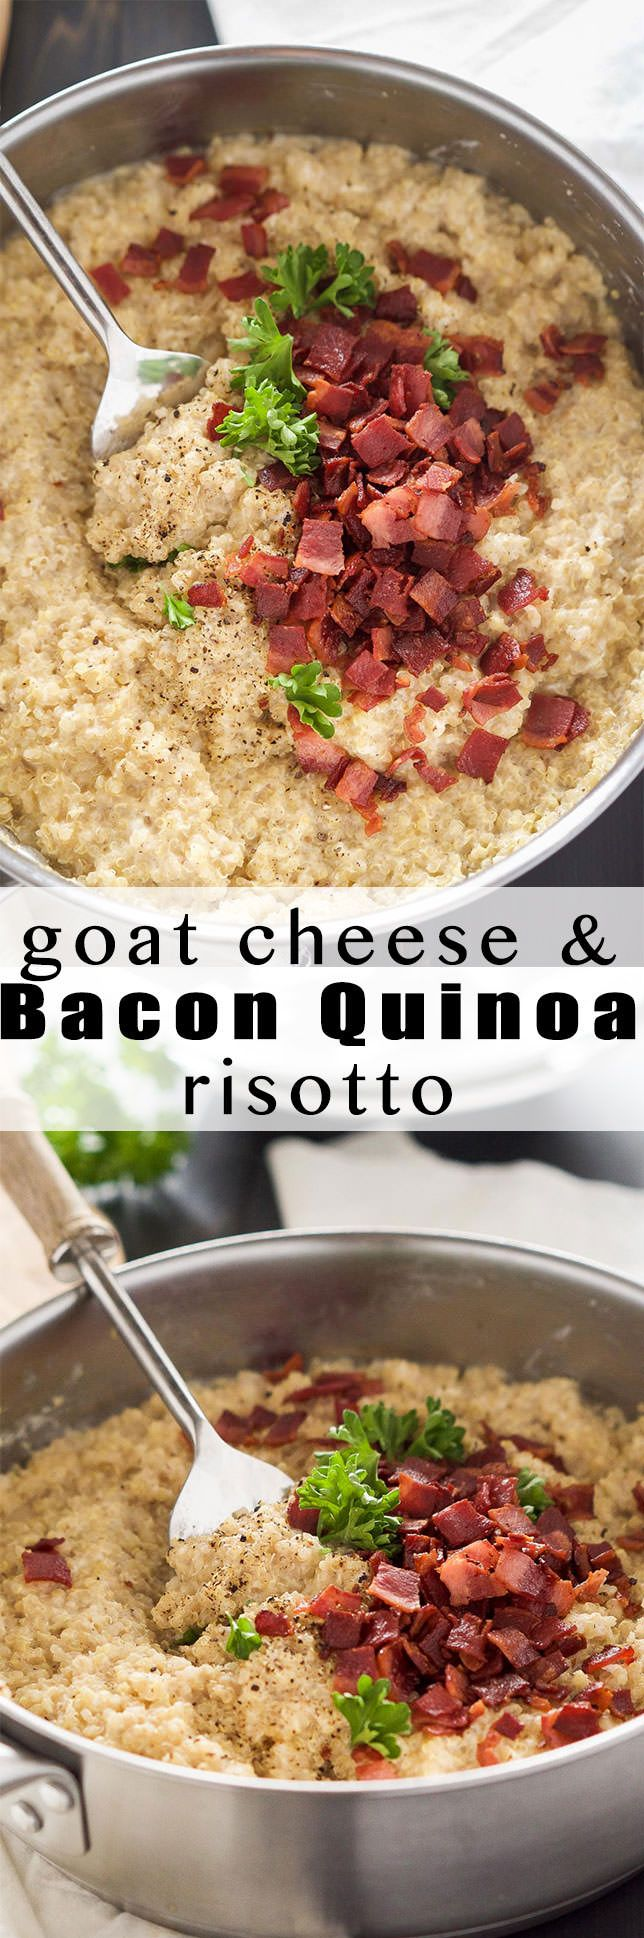 Goat Cheese & Mushroom Quinoa Risotto is a shortcut version of the classic risotto! Creamy goat cheese, bacon and quinoa come together in under 30 minutes and requires minimal hands on time; making this the perfect healthy, side dish!